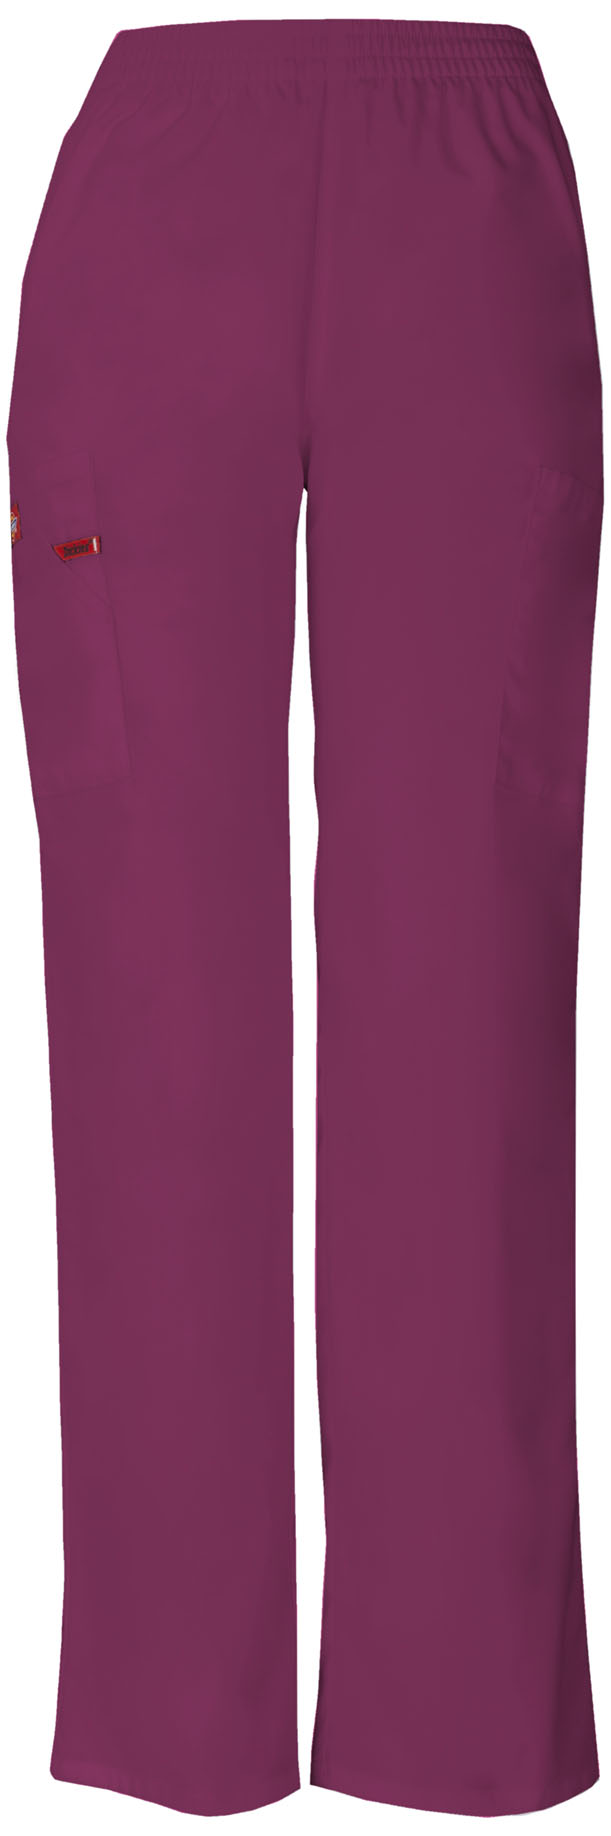 Natural Rise Pull-On Pant 86106